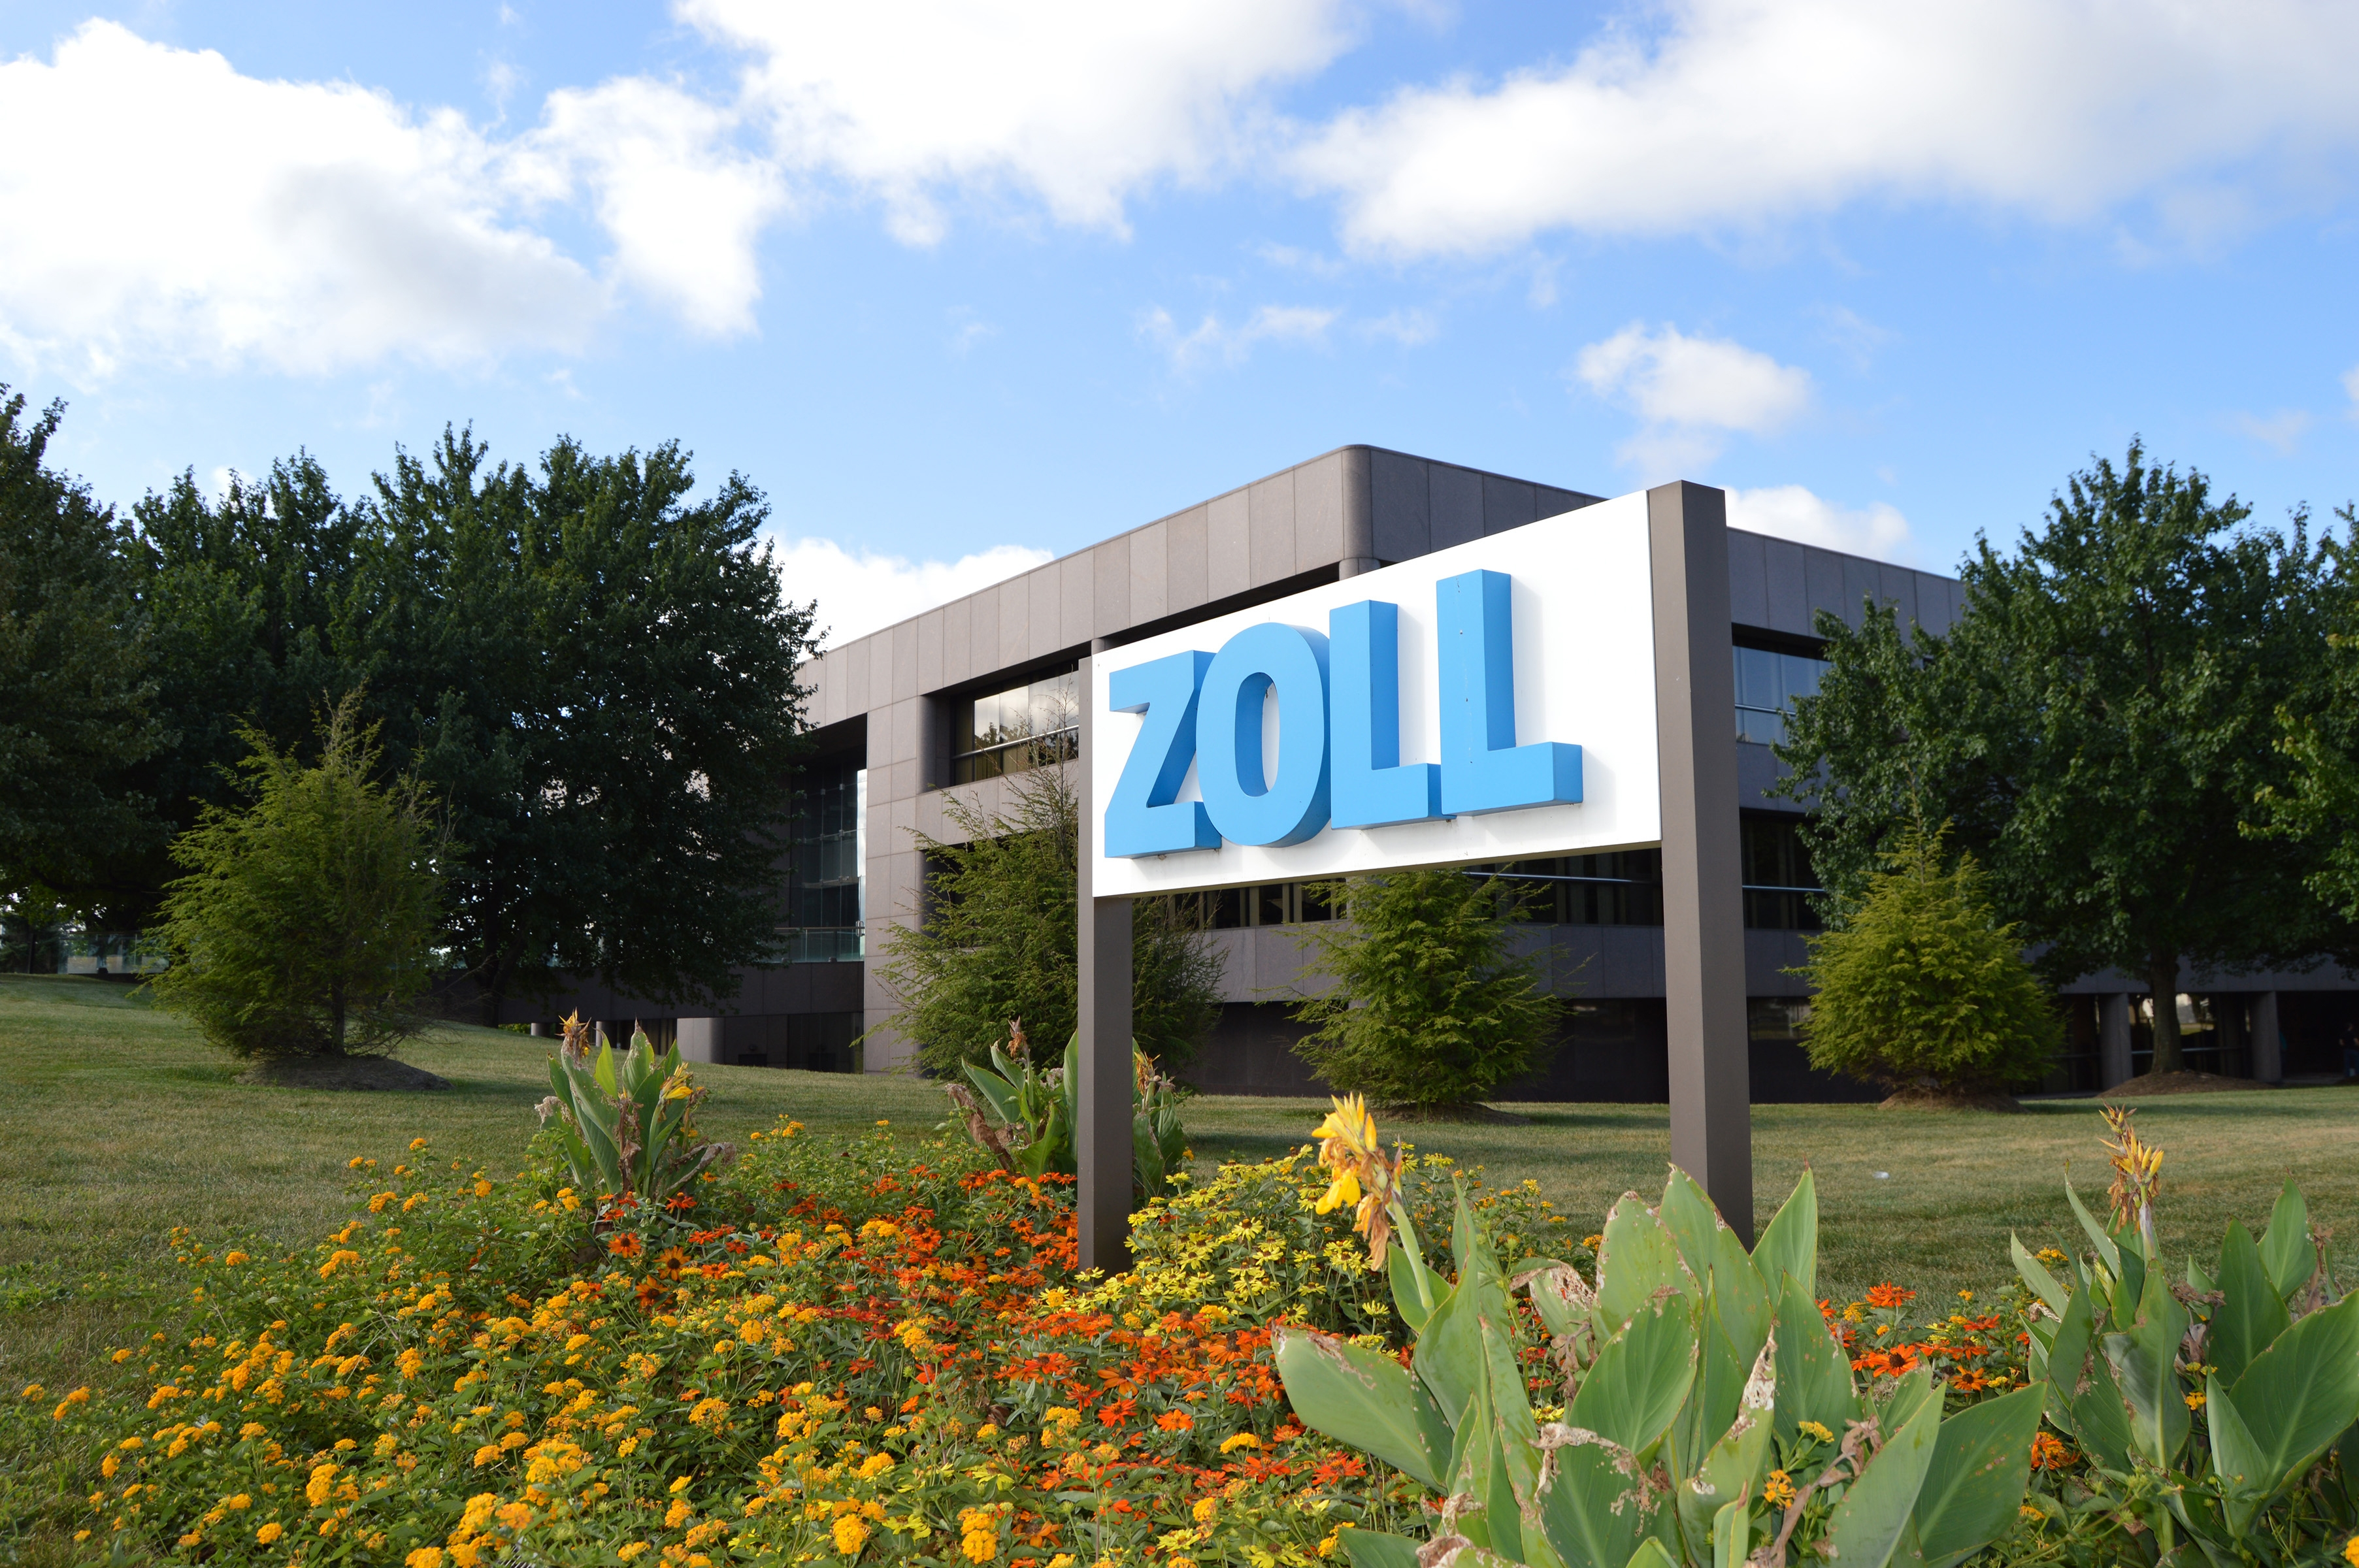 Zoll Medical sign and building